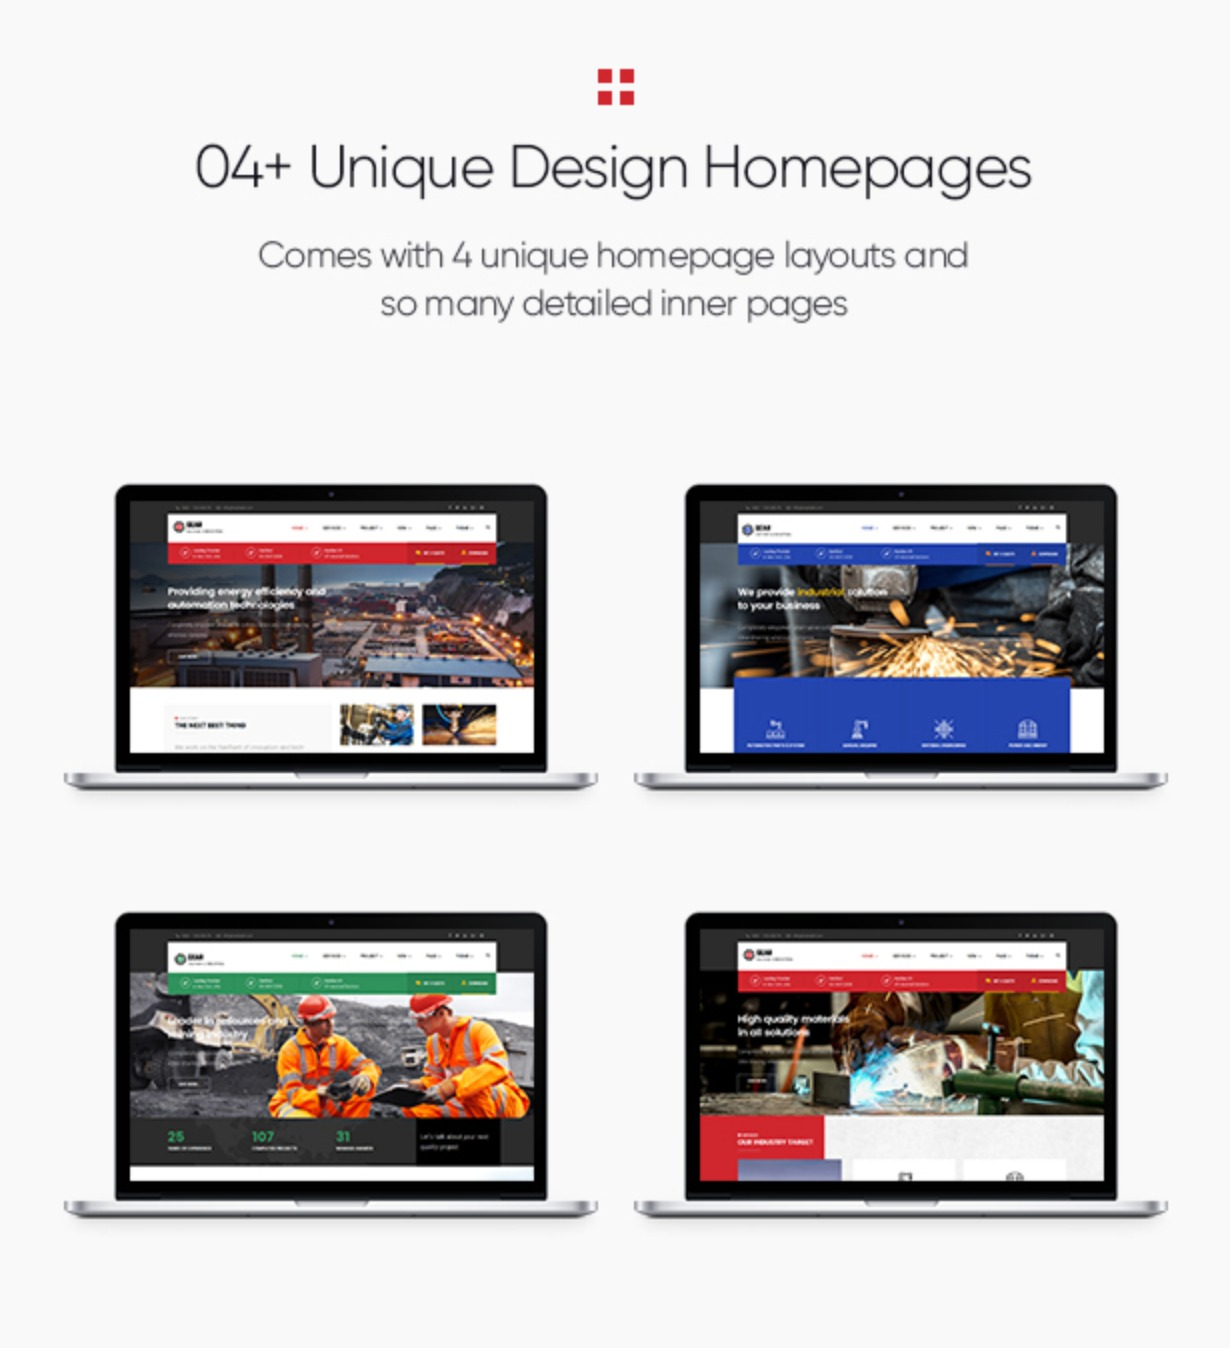 Gear - Factory and Industry Business WordPress Theme 04+ homepages